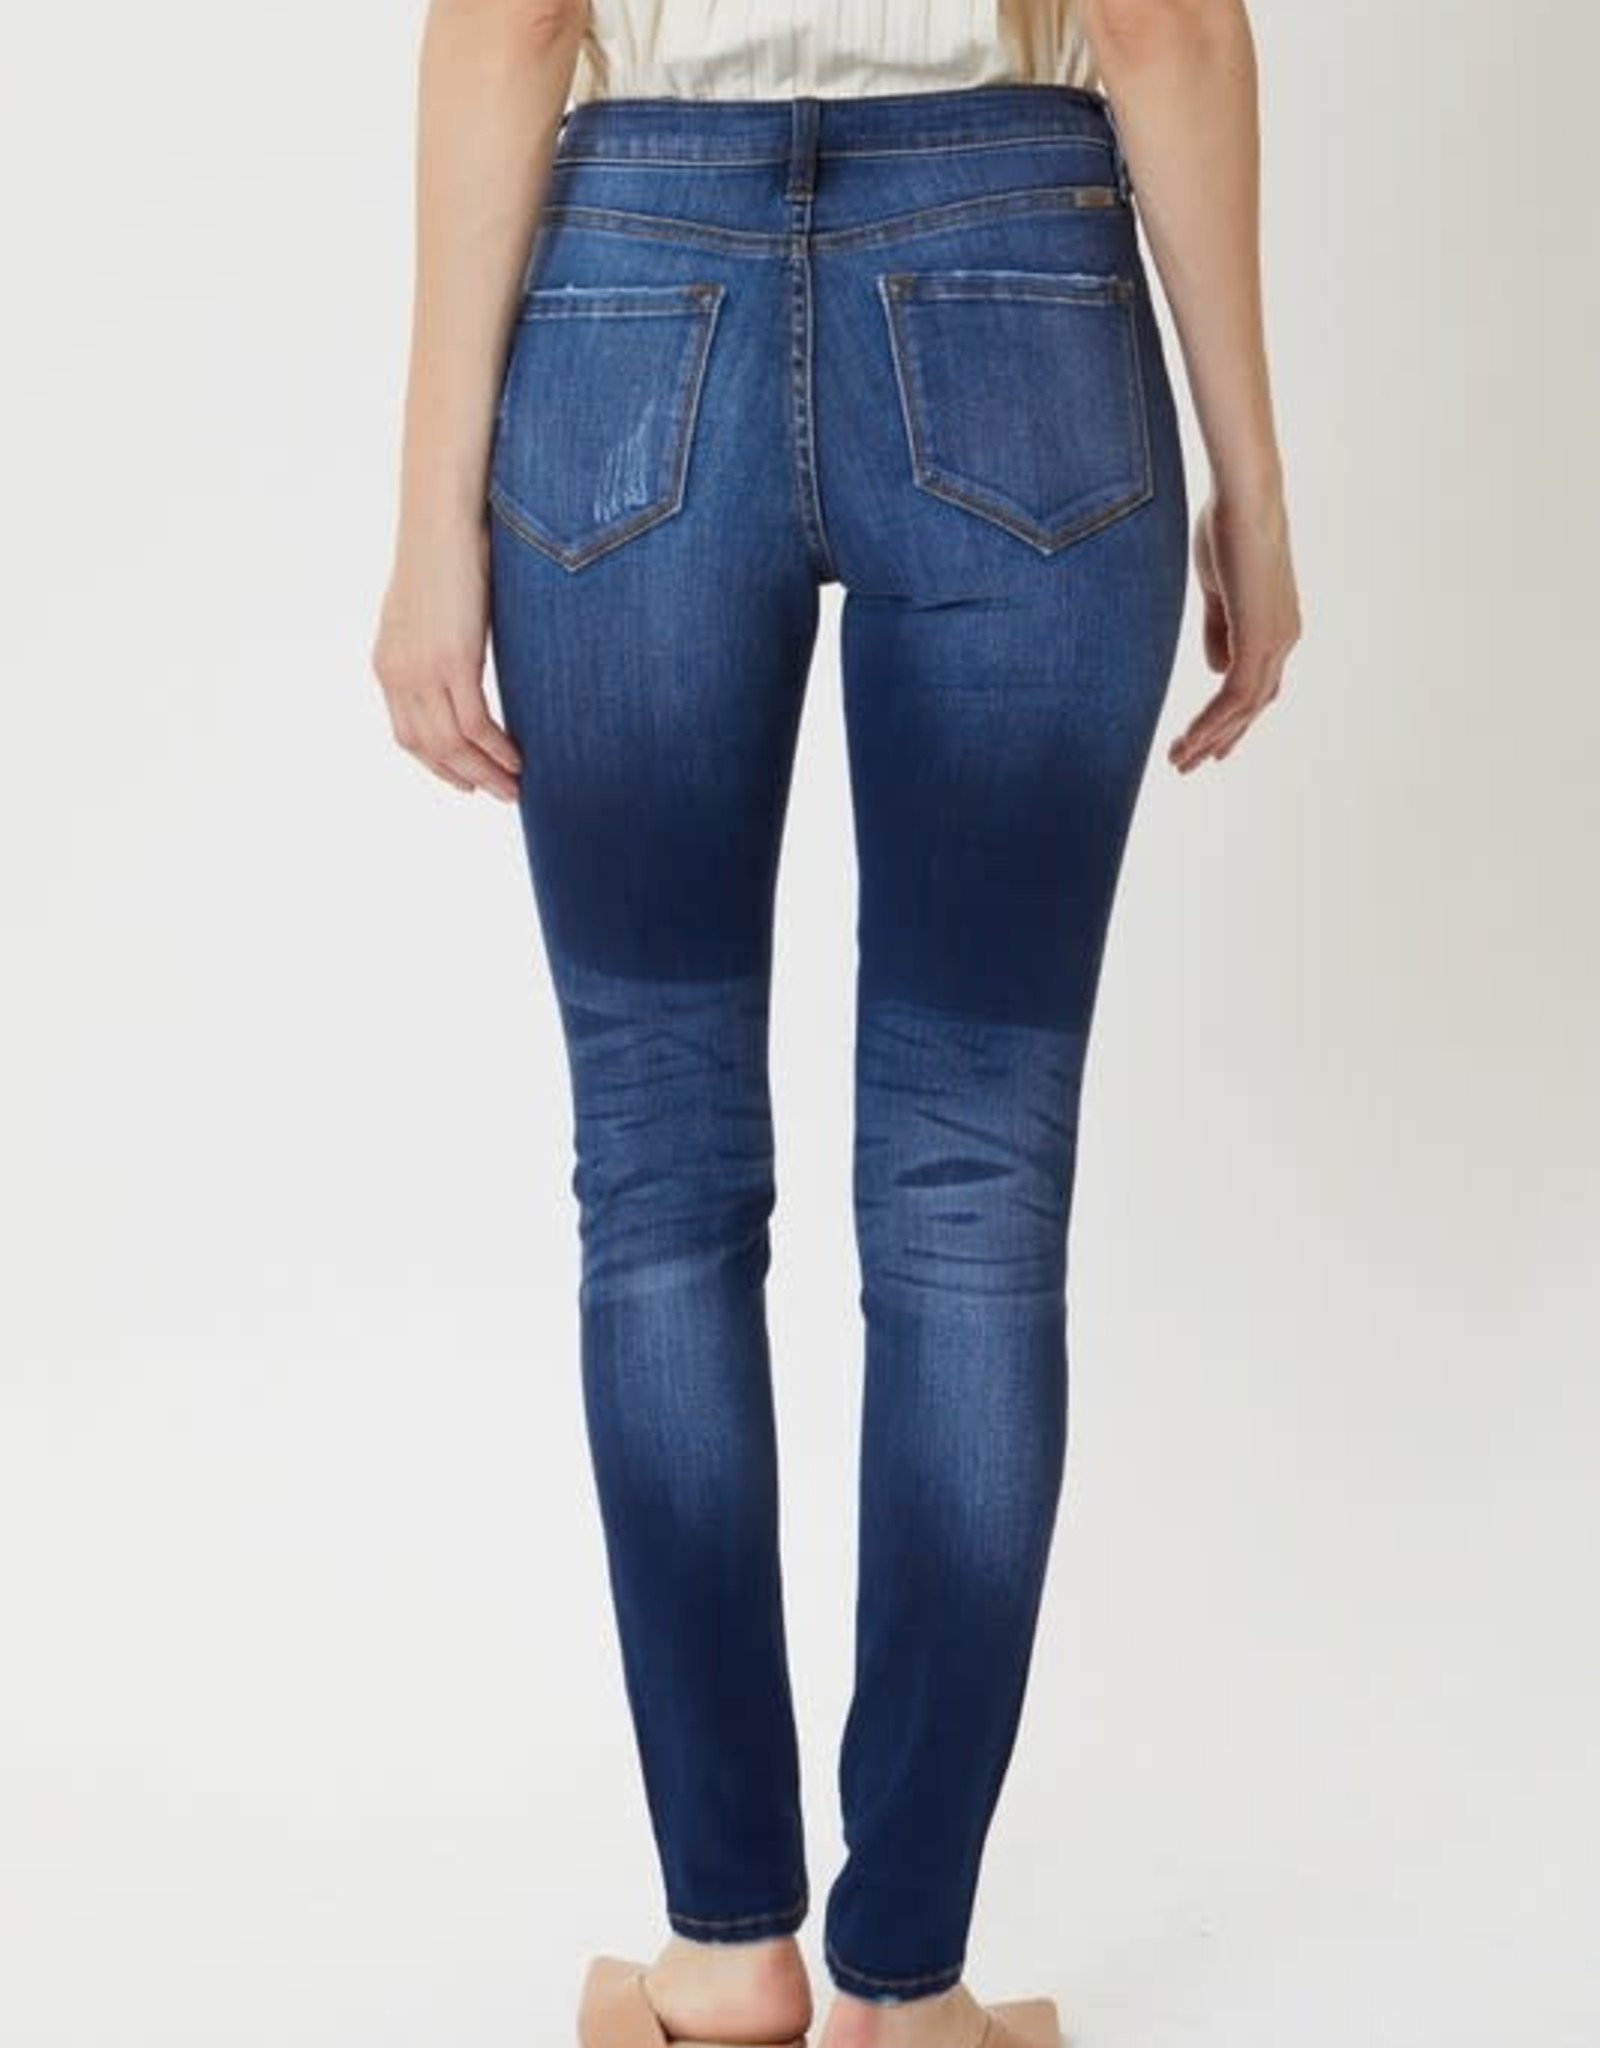 Miss Bliss High Rise Button Fly Super Skinny- Dark Washed